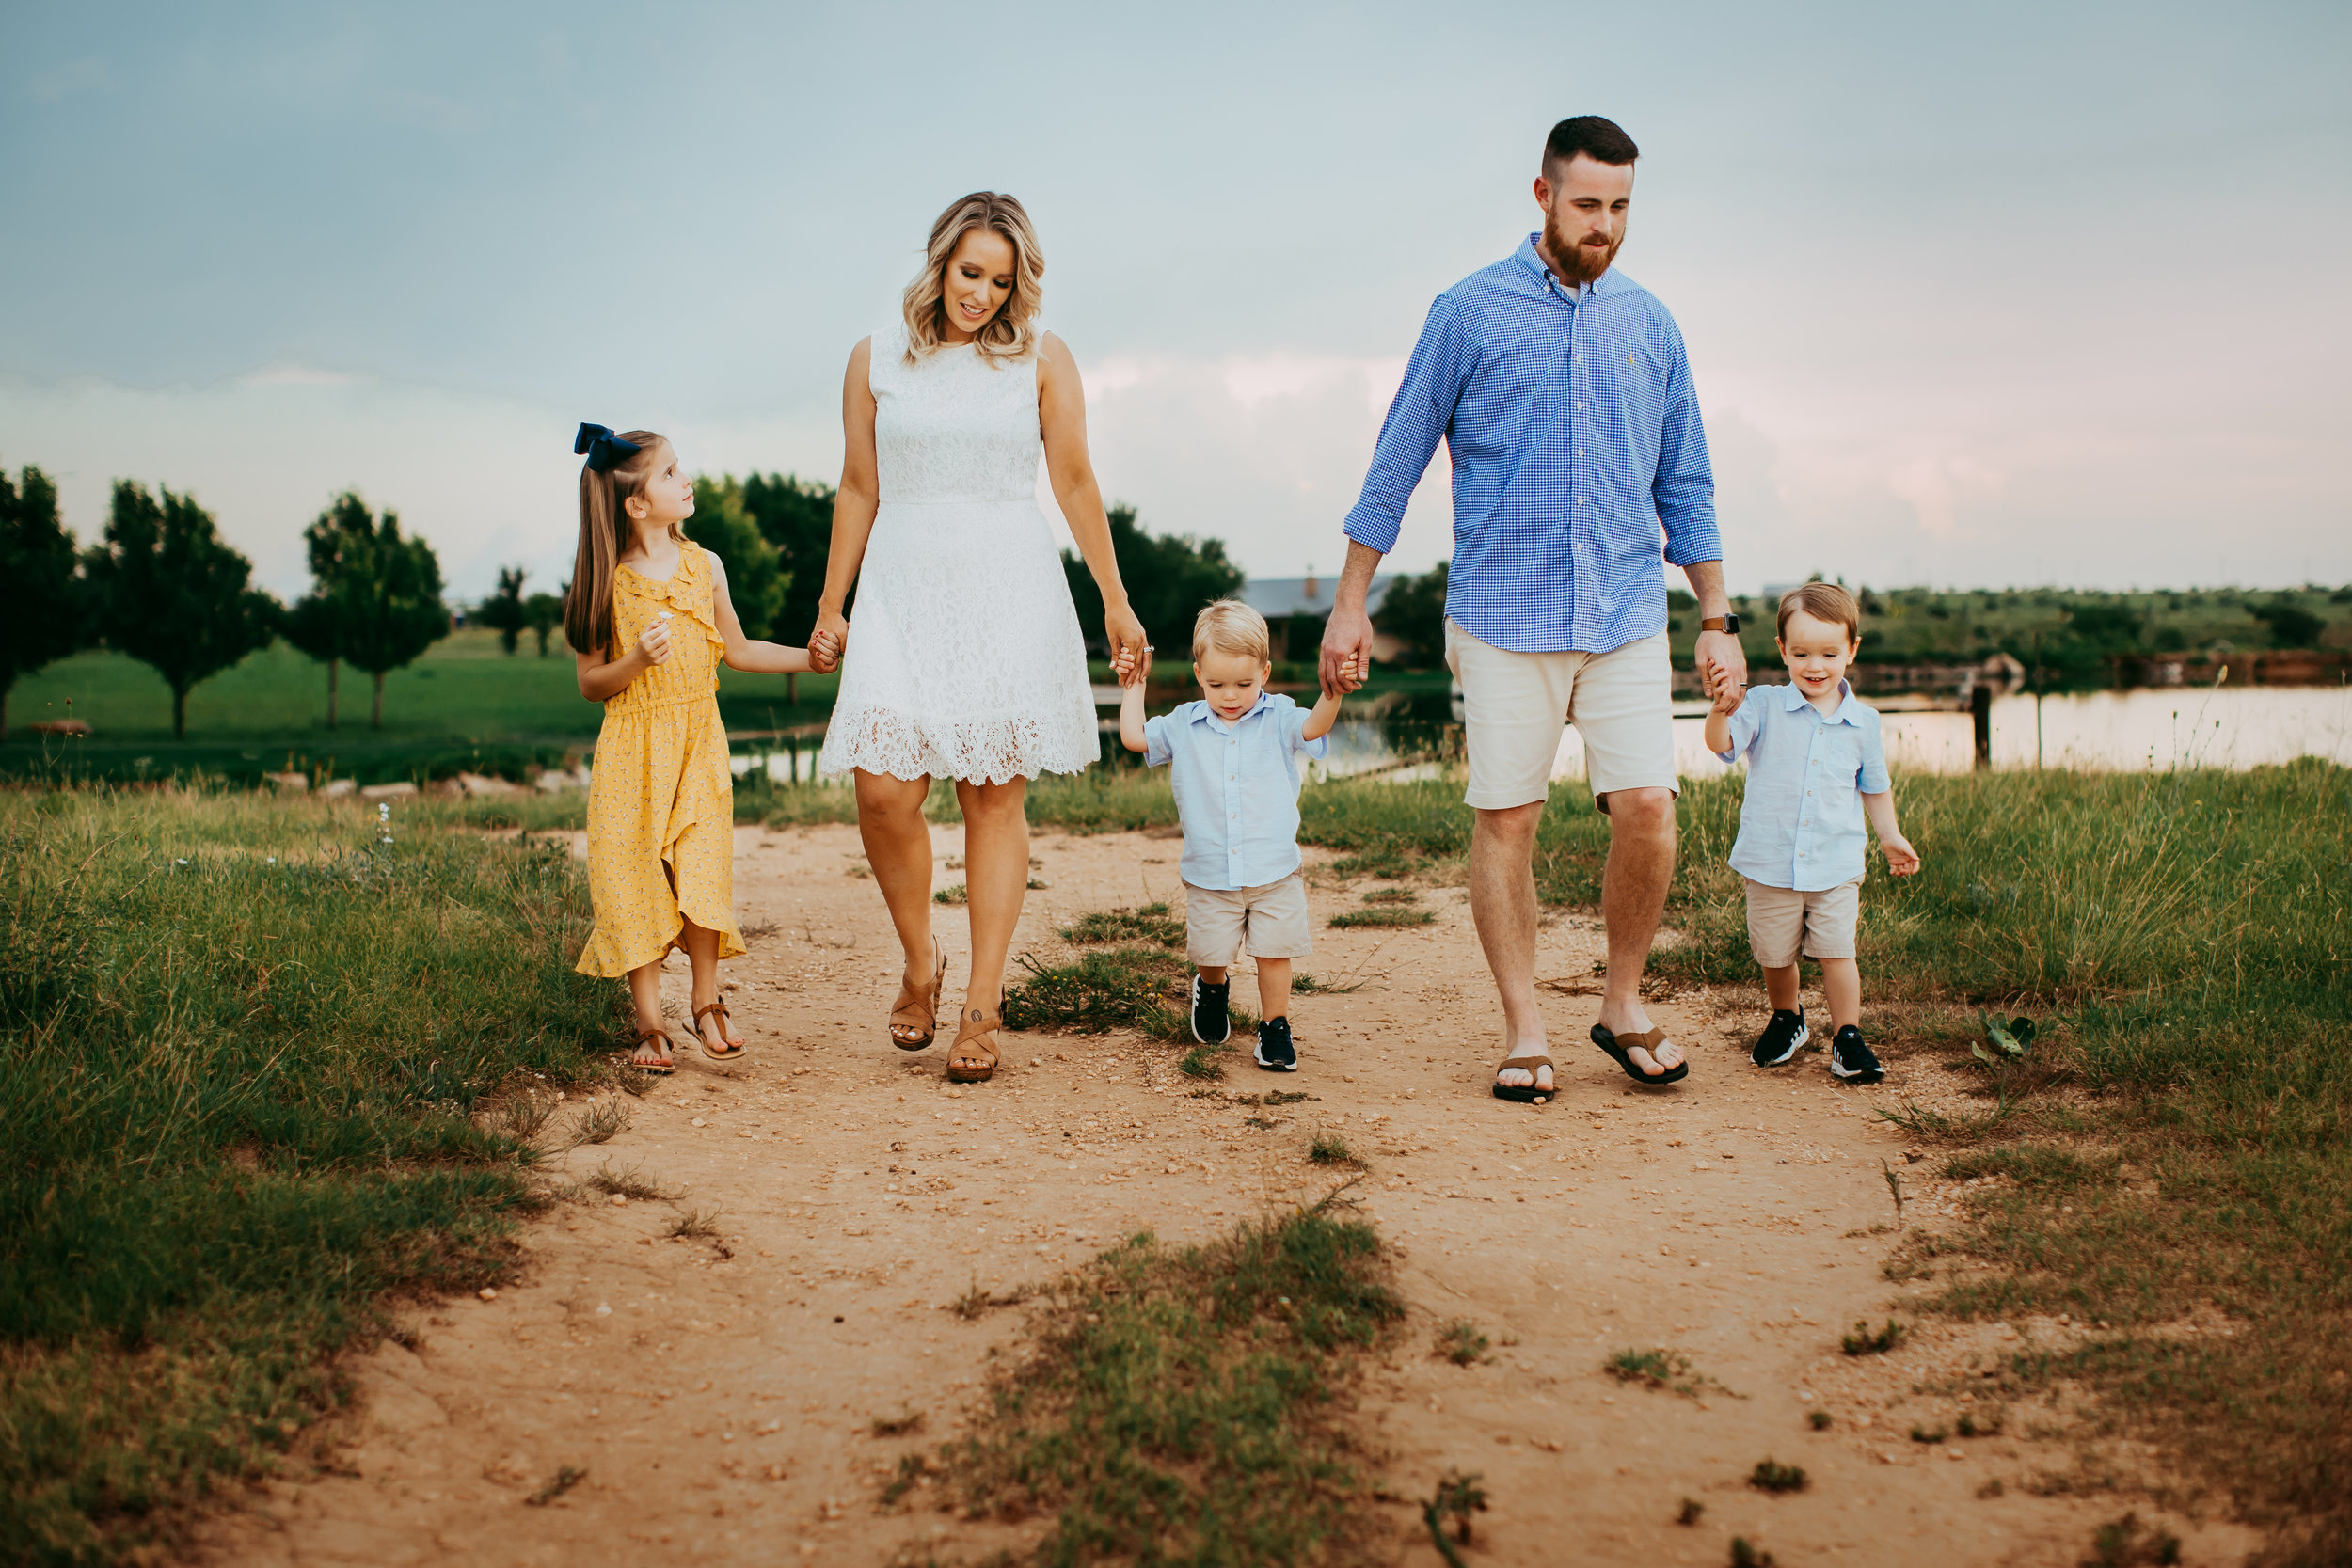 Family of five walking together down water side path #tealawardphotography #texasfamilyphotographer #amarillophotographer #amarillofamilyphotographer #lifestylephotography #emotionalphotography #familyphotosoot #family #lovingsiblings #purejoy #familyphotos #familyphotographer #greatoutdoors #naturalfamilyinteraction